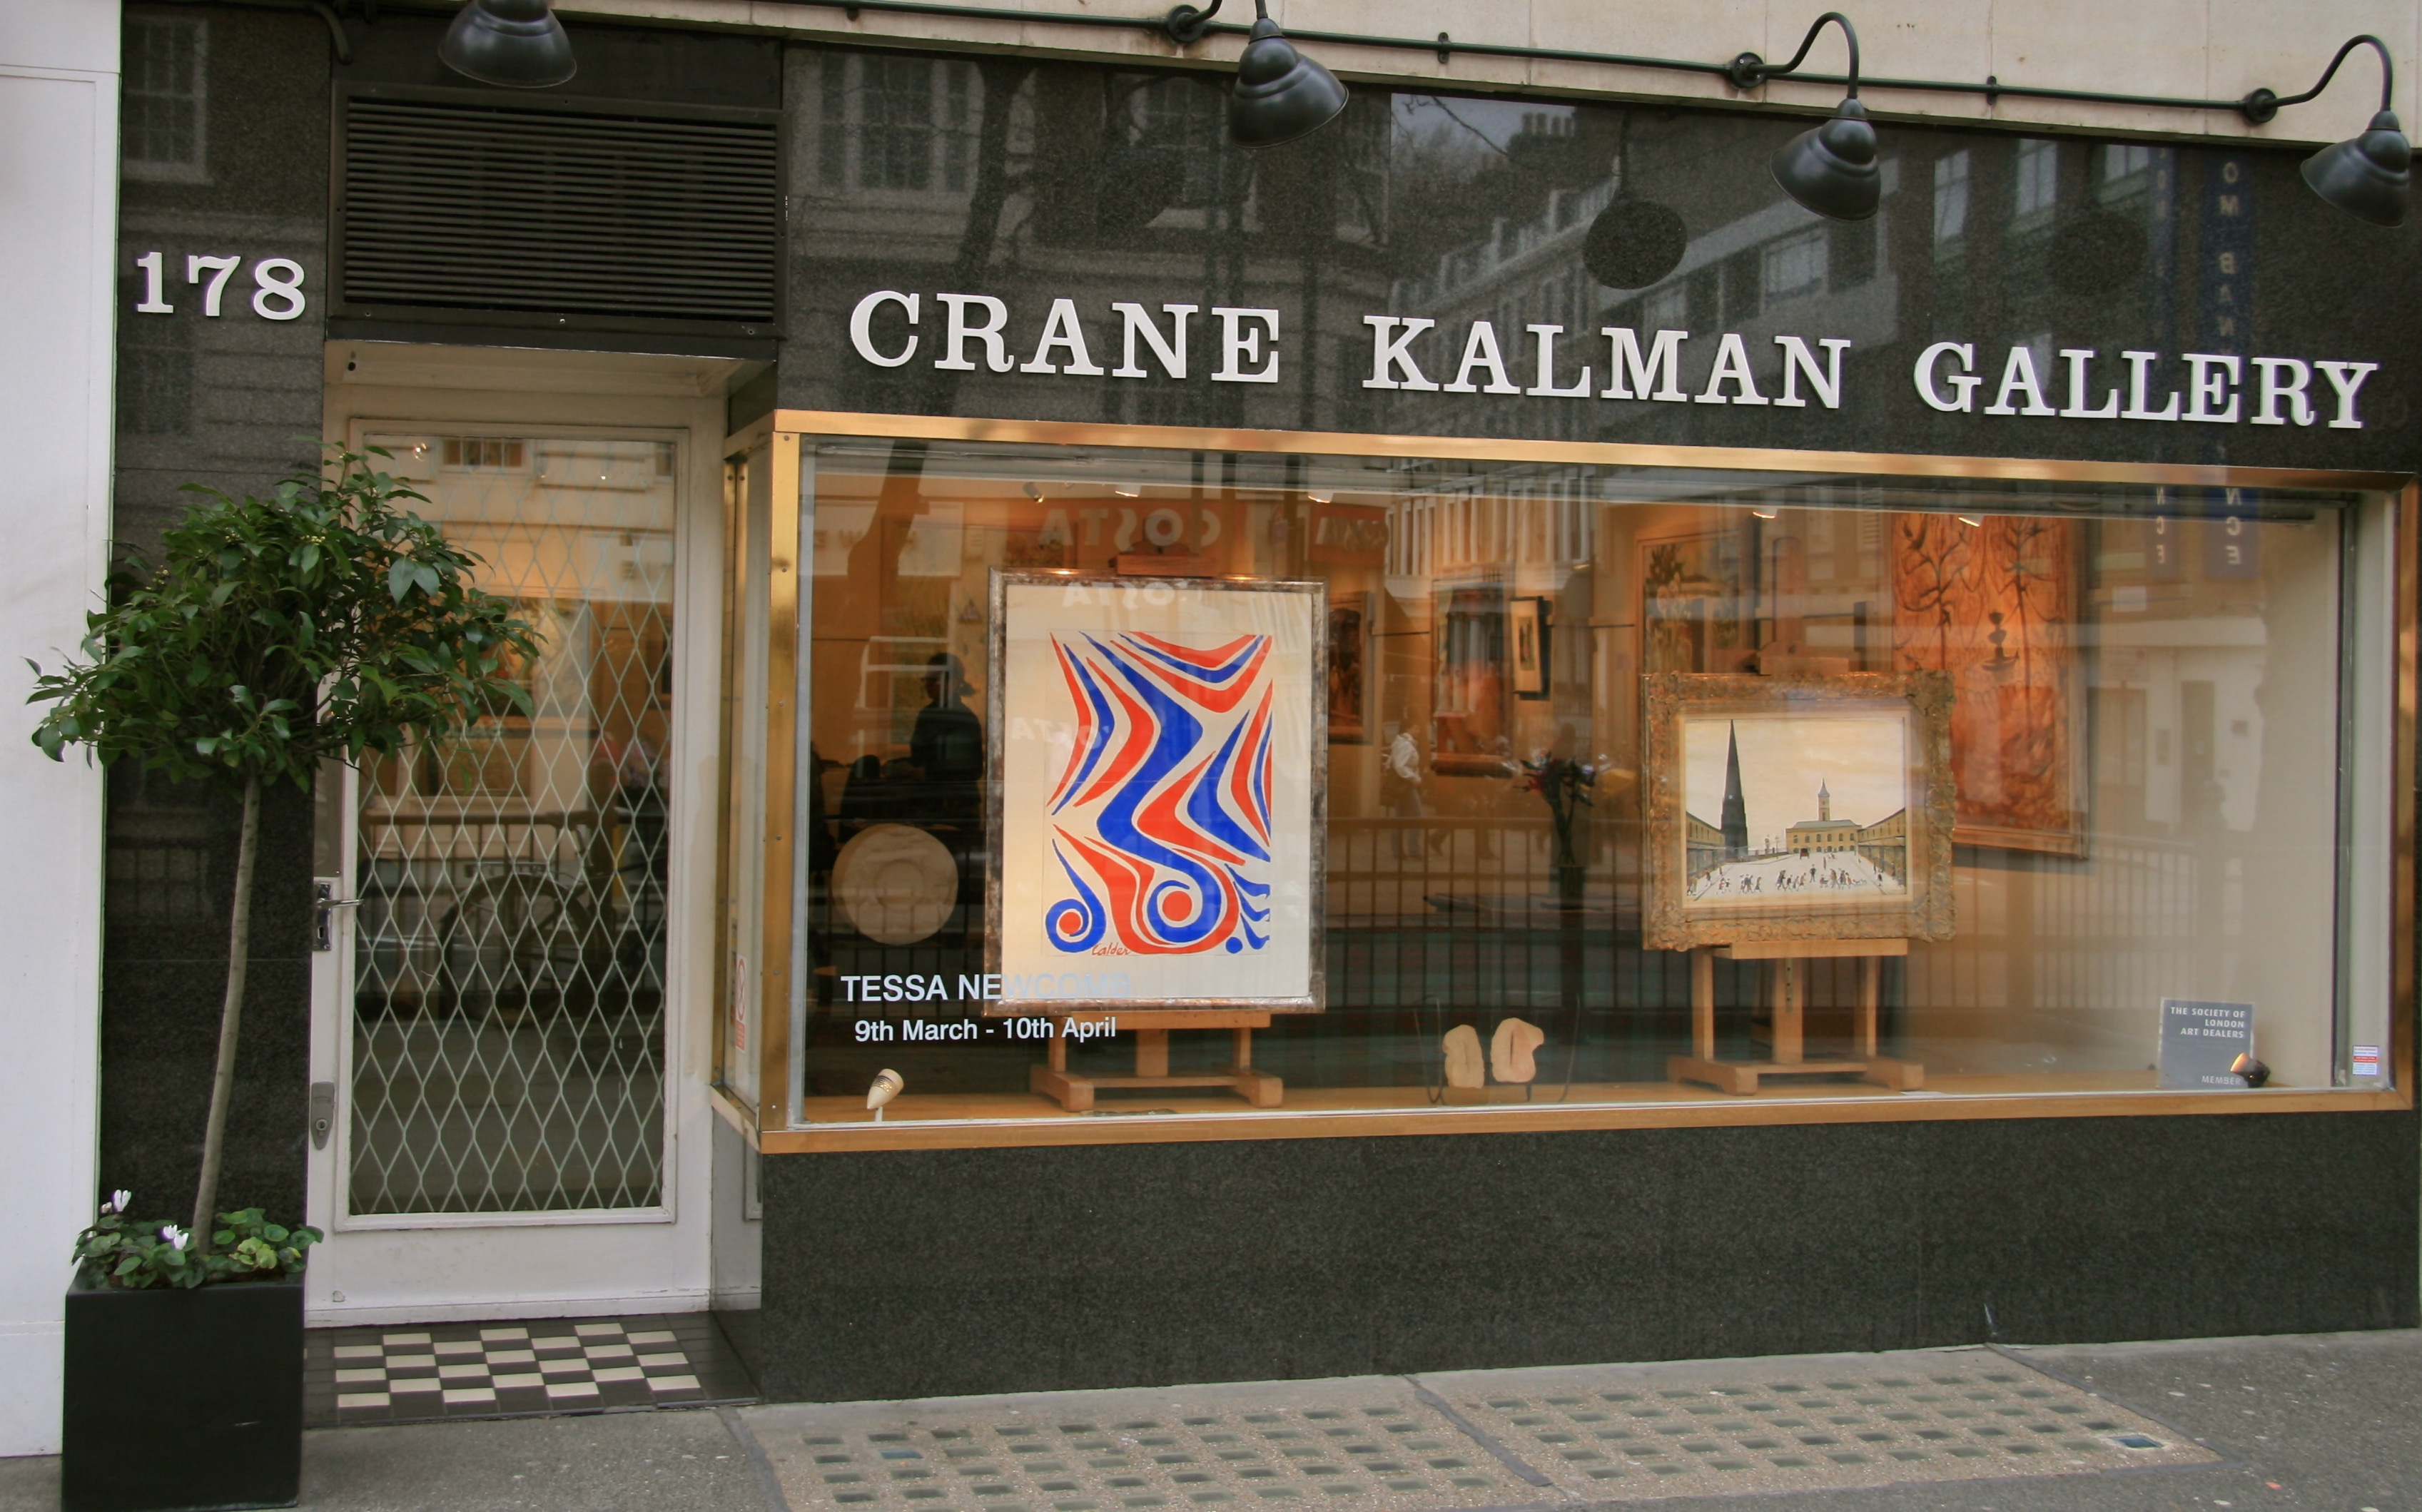 An Interview with Robin Light, Director, The Crane Kalman Gallery, 178 Brompton Road, London